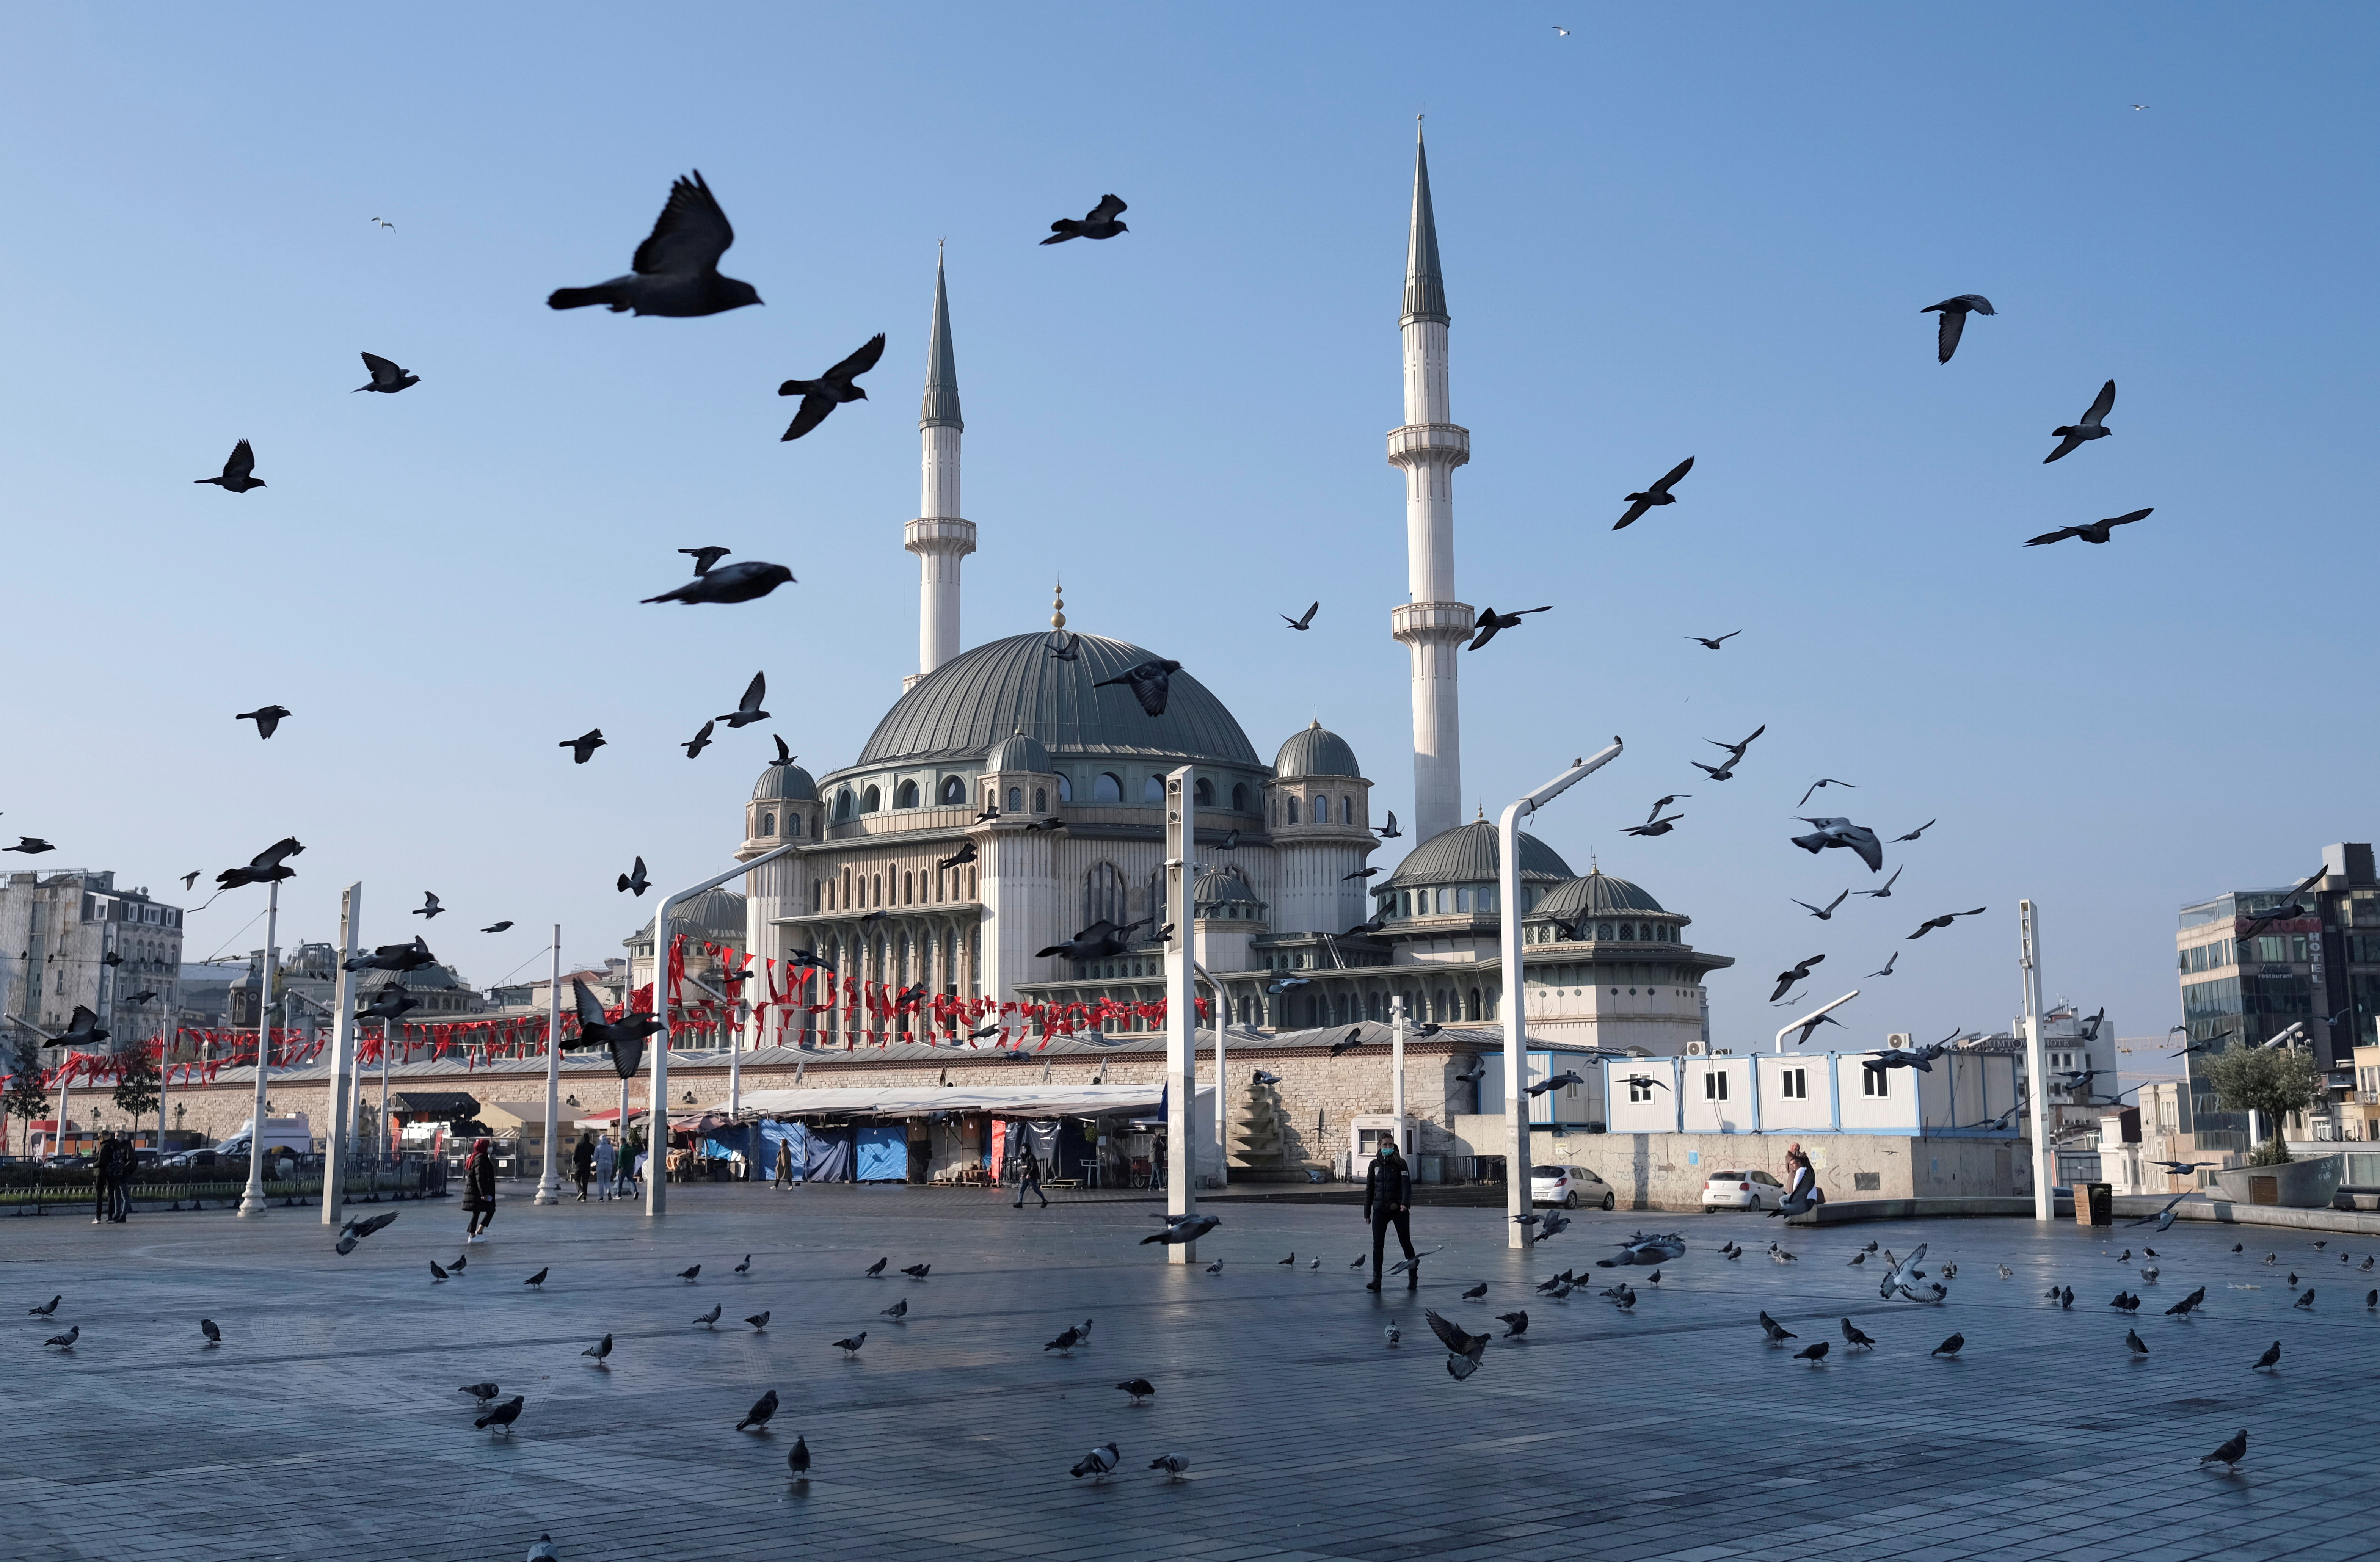 Pigeons fly over the Taksim Square during a nation-wide weekend curfew which was imposed to prevent the spread of the coronavirus disease (COVID-19), in Istanbul, Turkey December 5, 2020. REUTERS/Murad Sezer